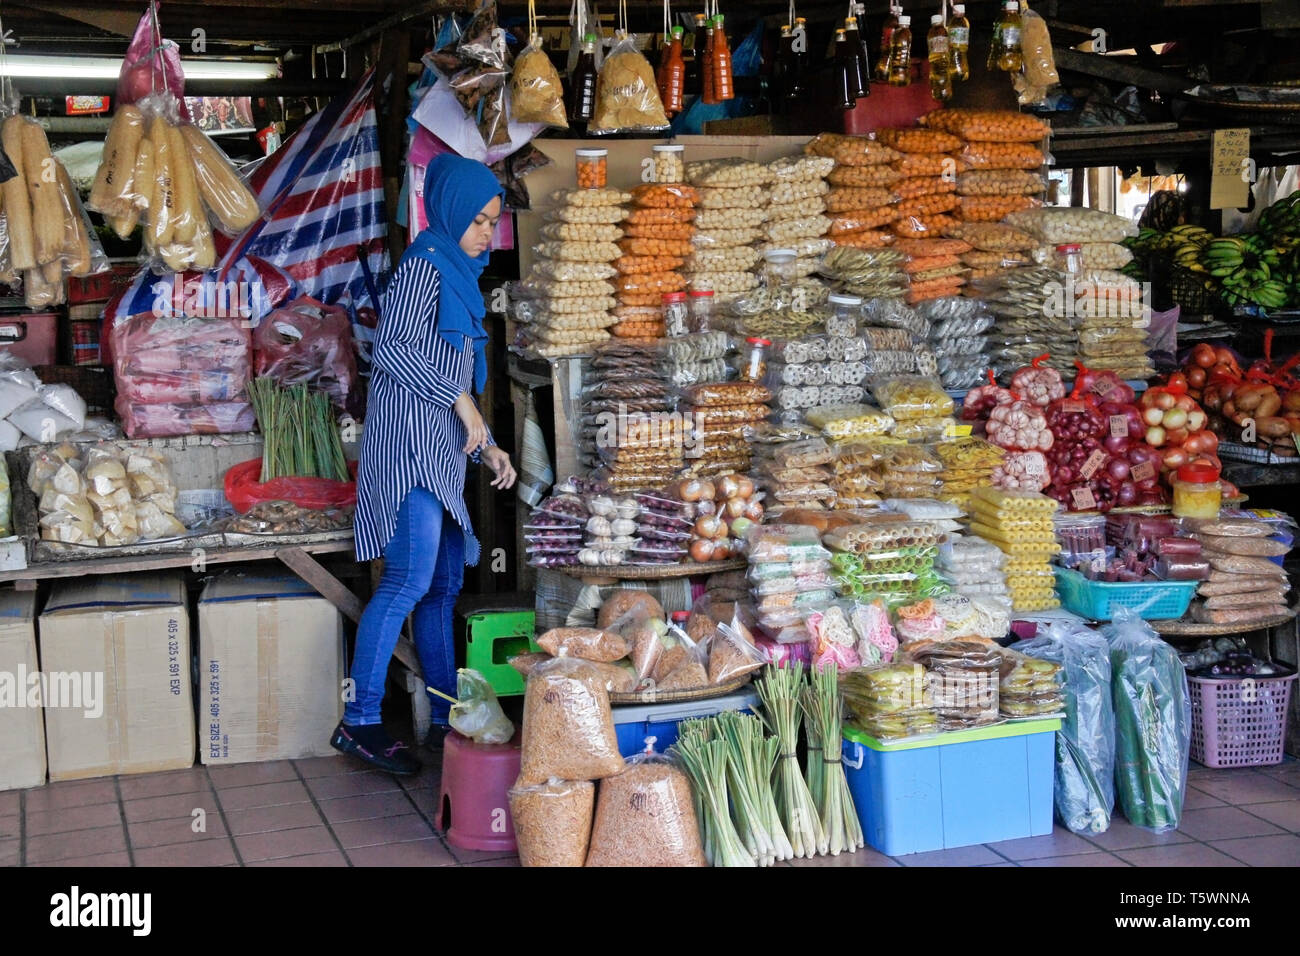 Muslim woman selling snacks and produce at Central Market, Kota Kinabalu, Sabah (Borneo), Malaysia - Stock Image